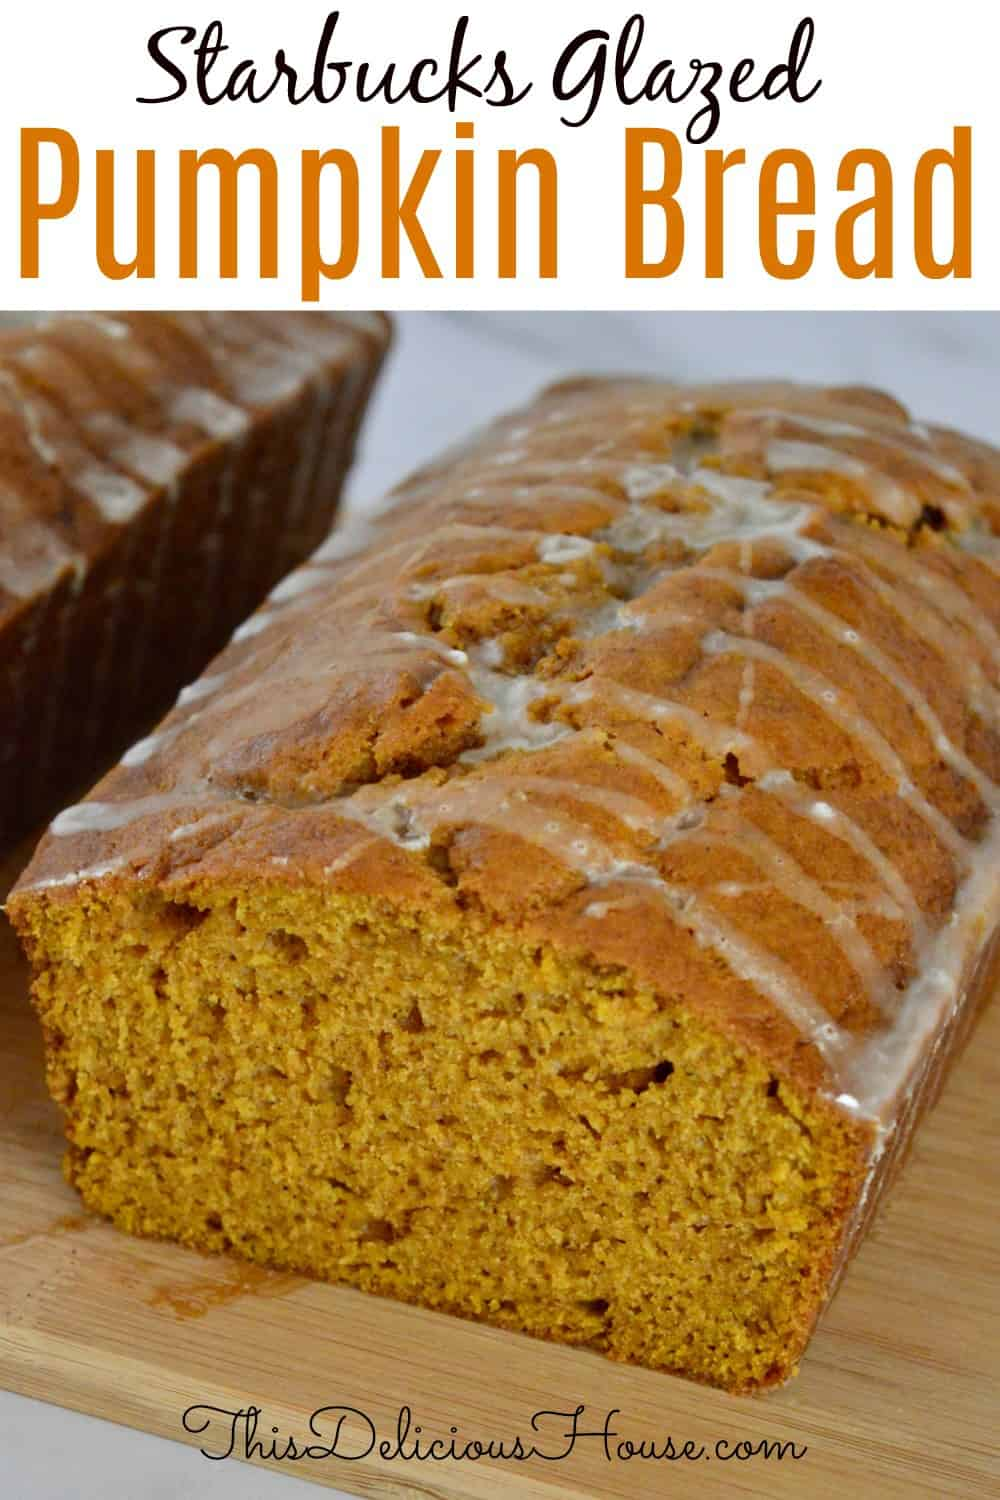 Starbucks glazed pumpkin bread Pinterest pin.